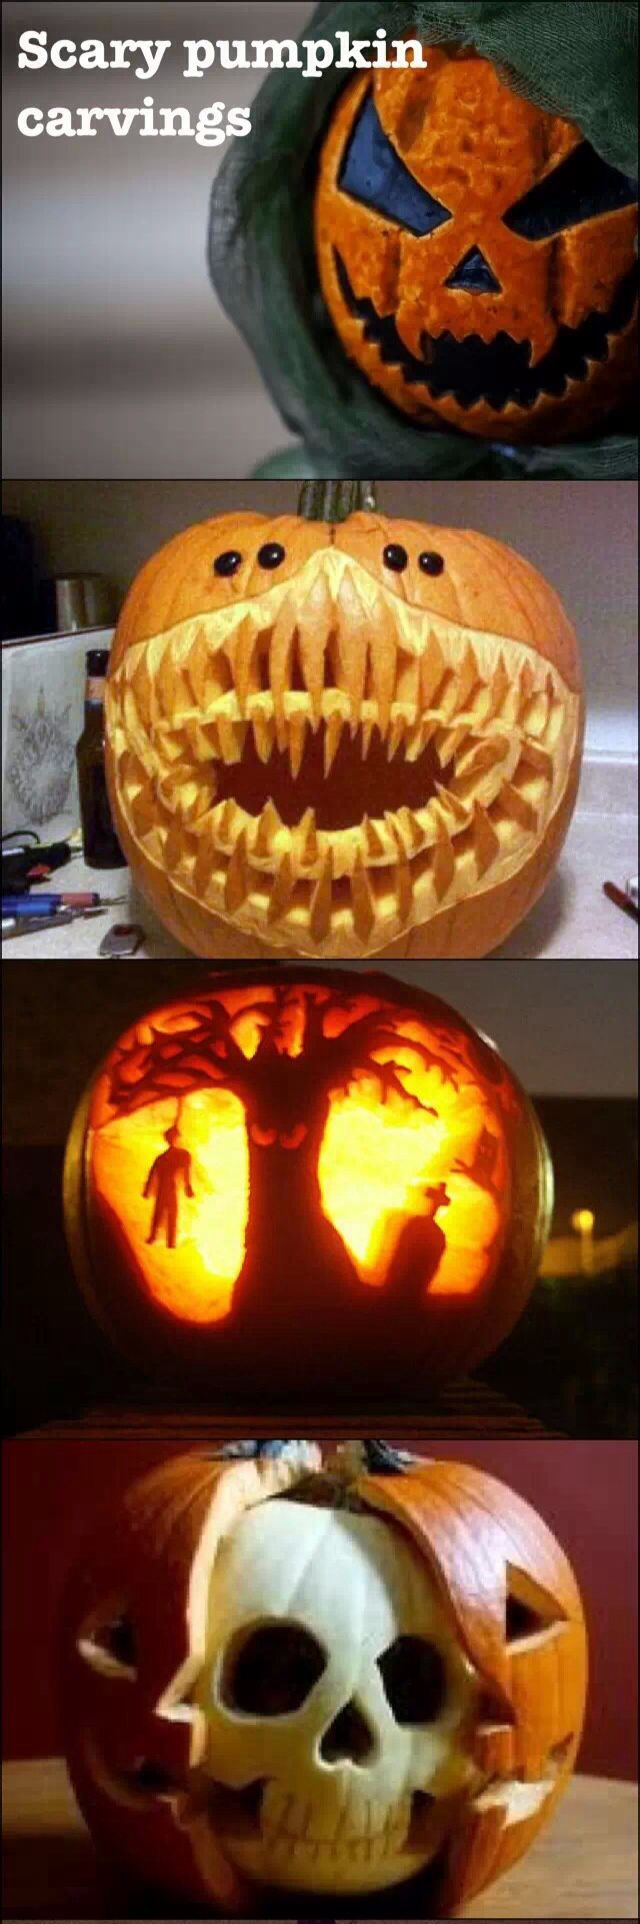 The 25+ best Scary pumpkin carving ideas on Pinterest | Pumpkin ...